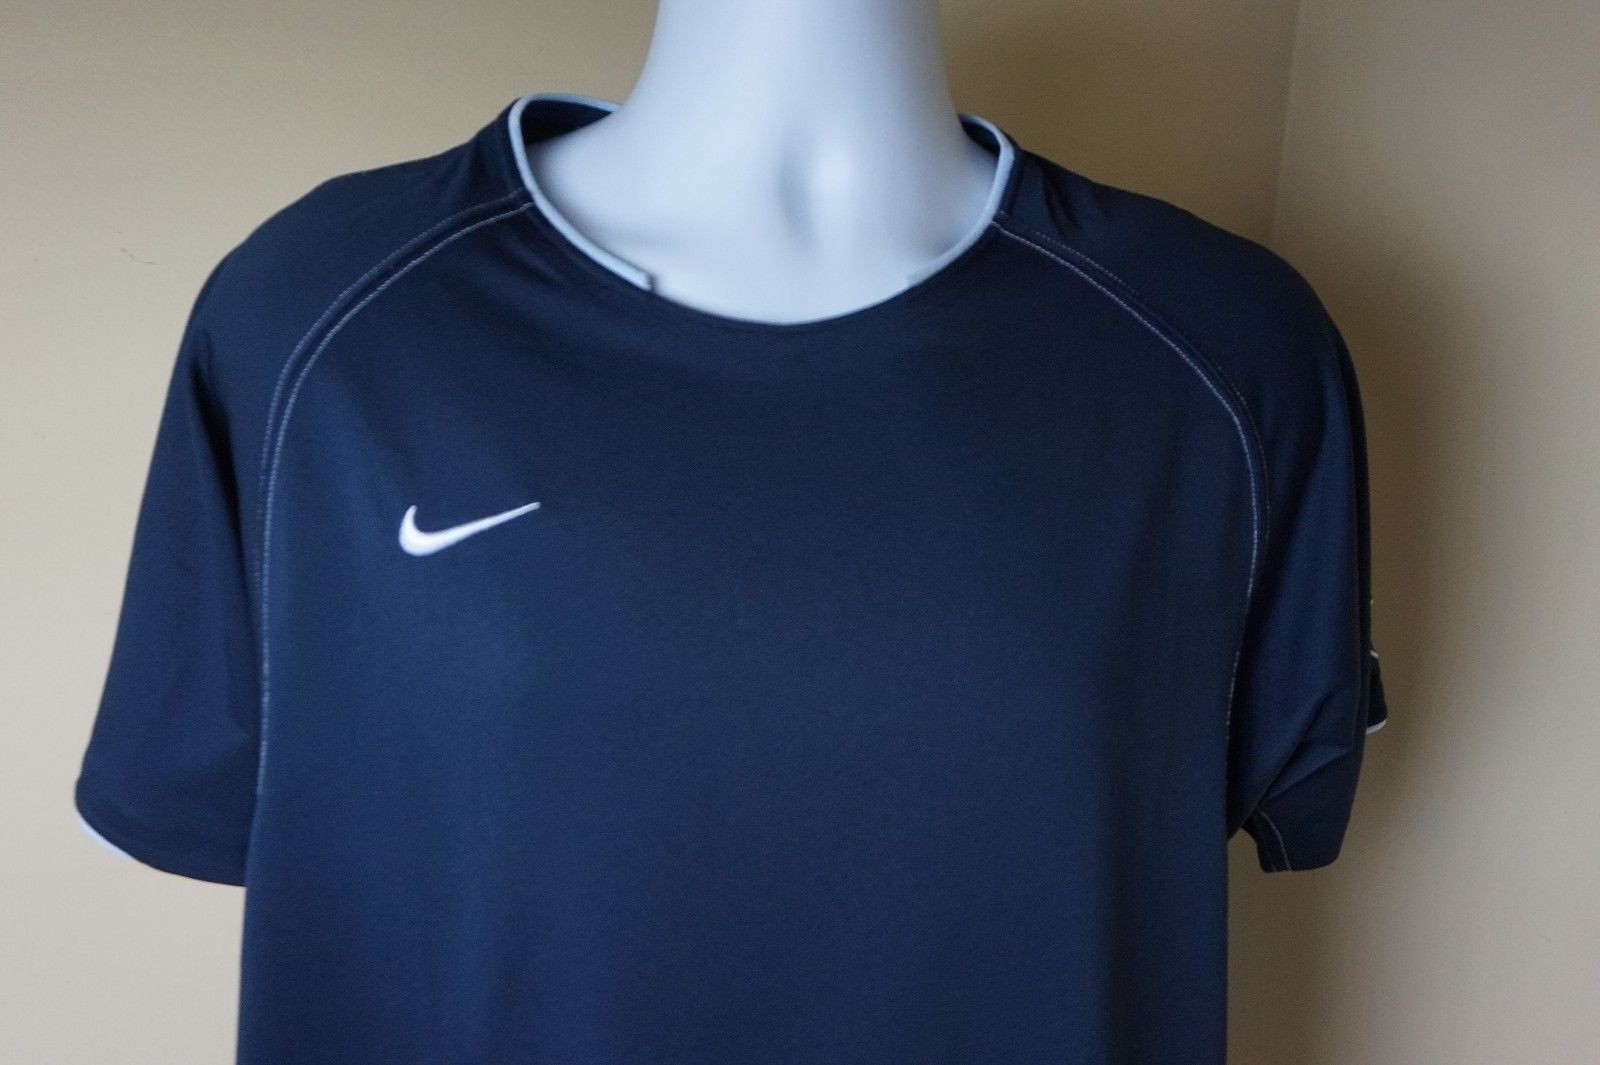 be05e4e03 Vintage Nike Sphere Dry Soccer Blank and 50 similar items. S l1600